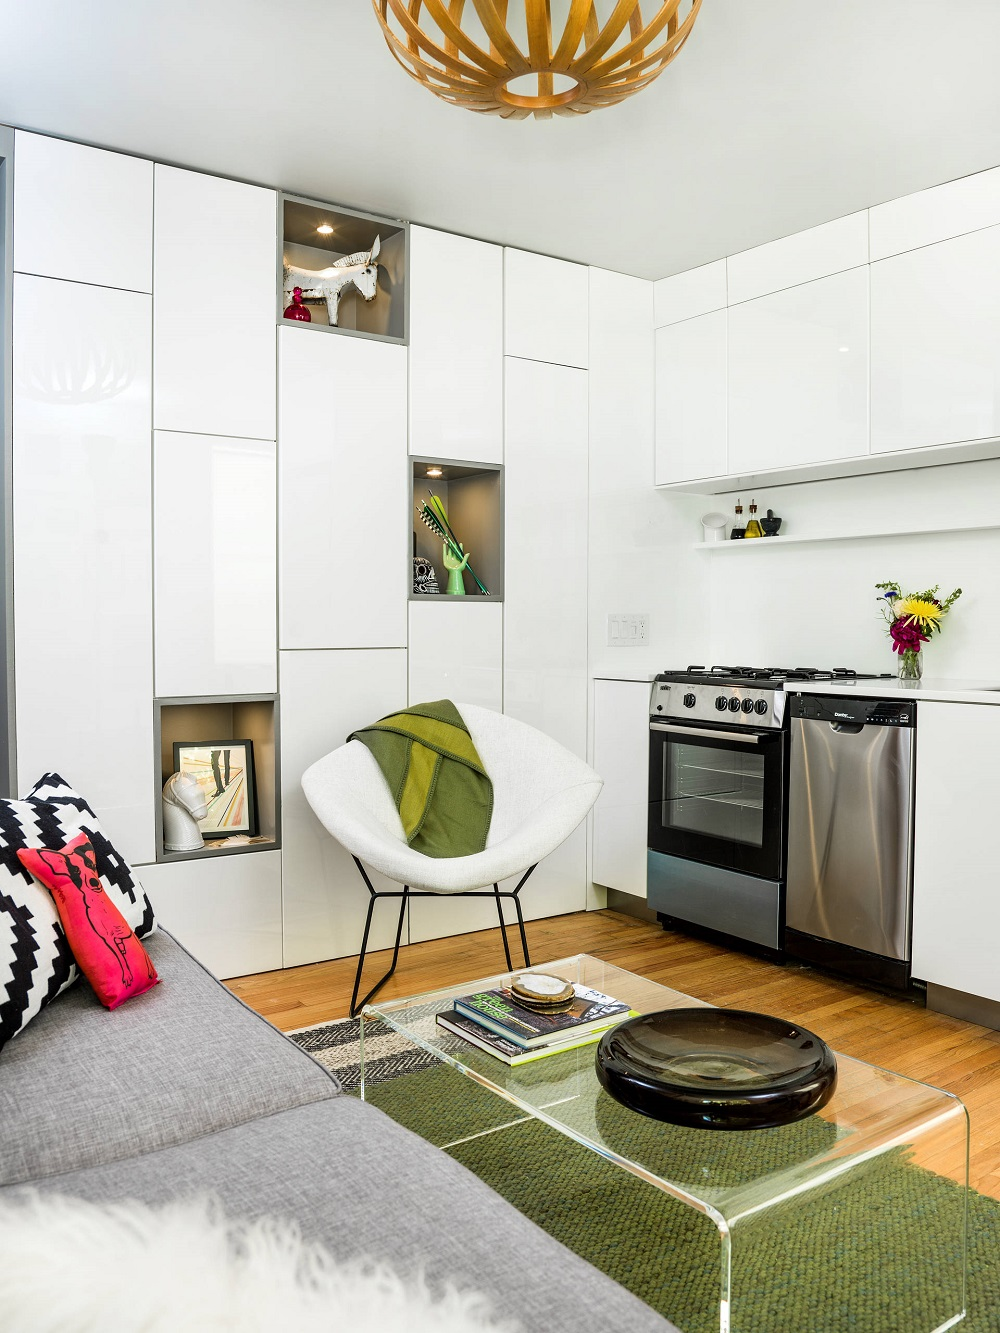 k12 What is an efficiency apartment and why is it different from a studio?